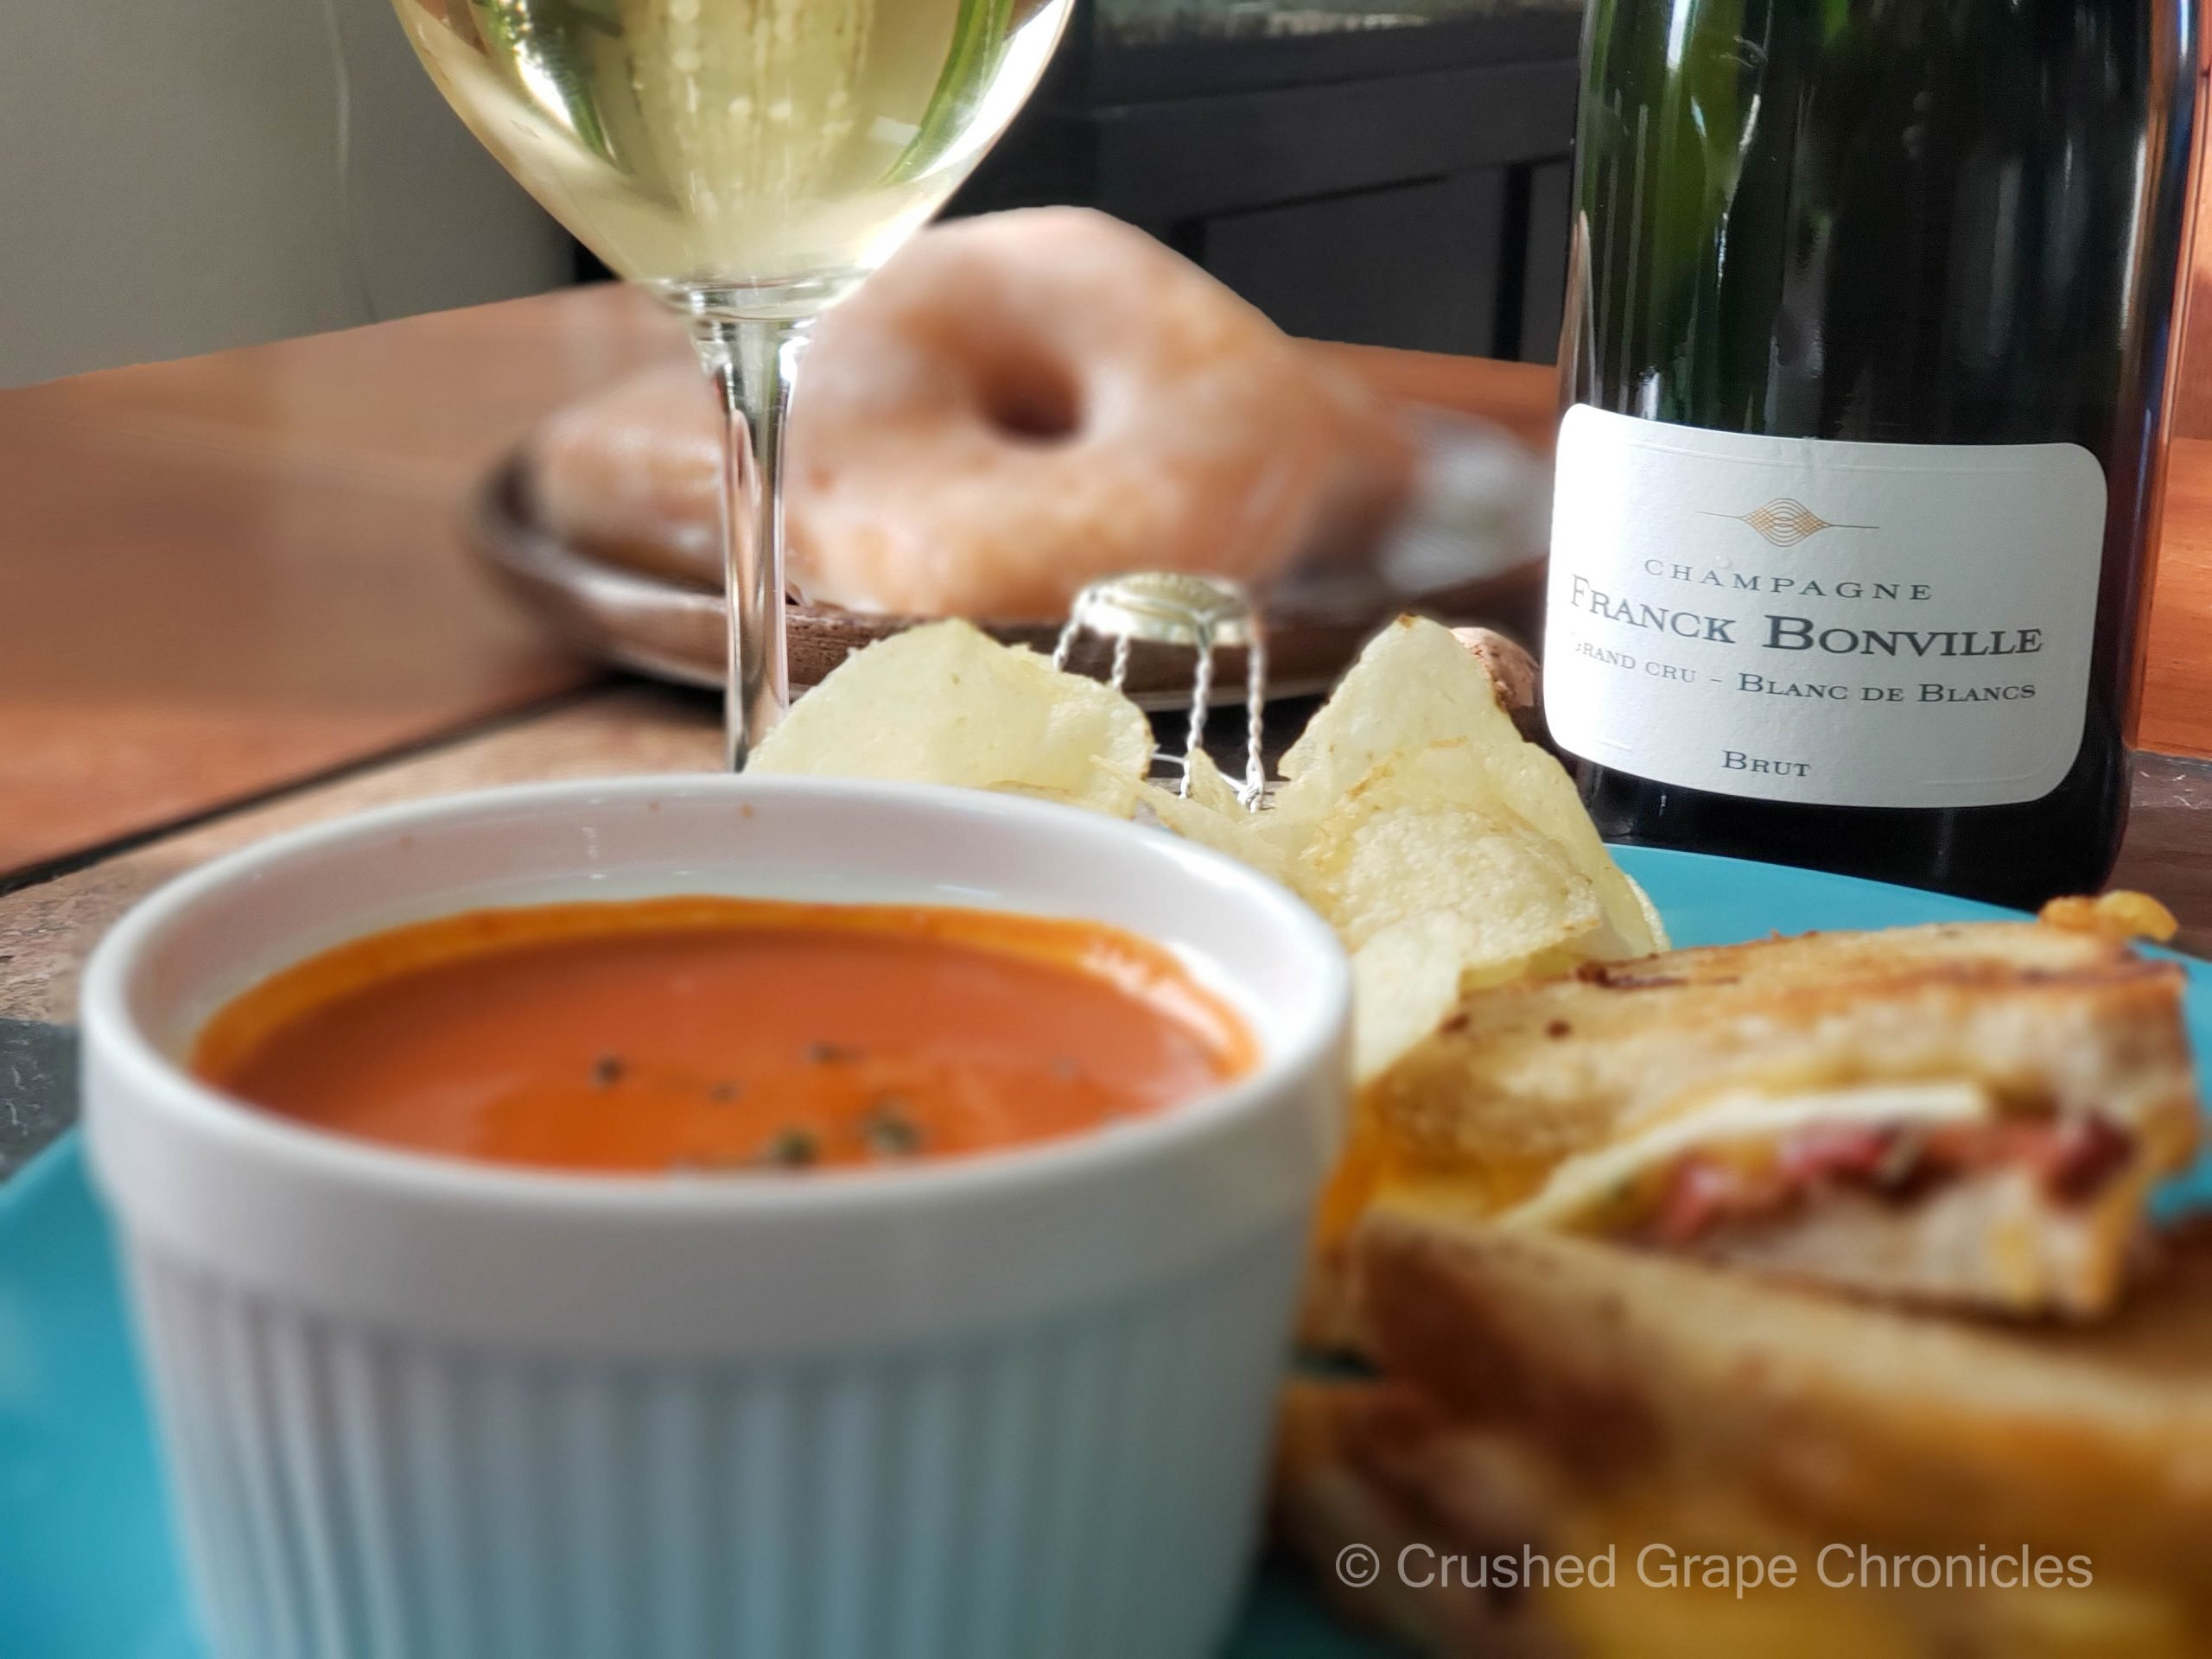 Champagne Franck Bonville Brut Blanc de blanc, Grilled Cheese, Tomato soup, potato chips and glazed donuts